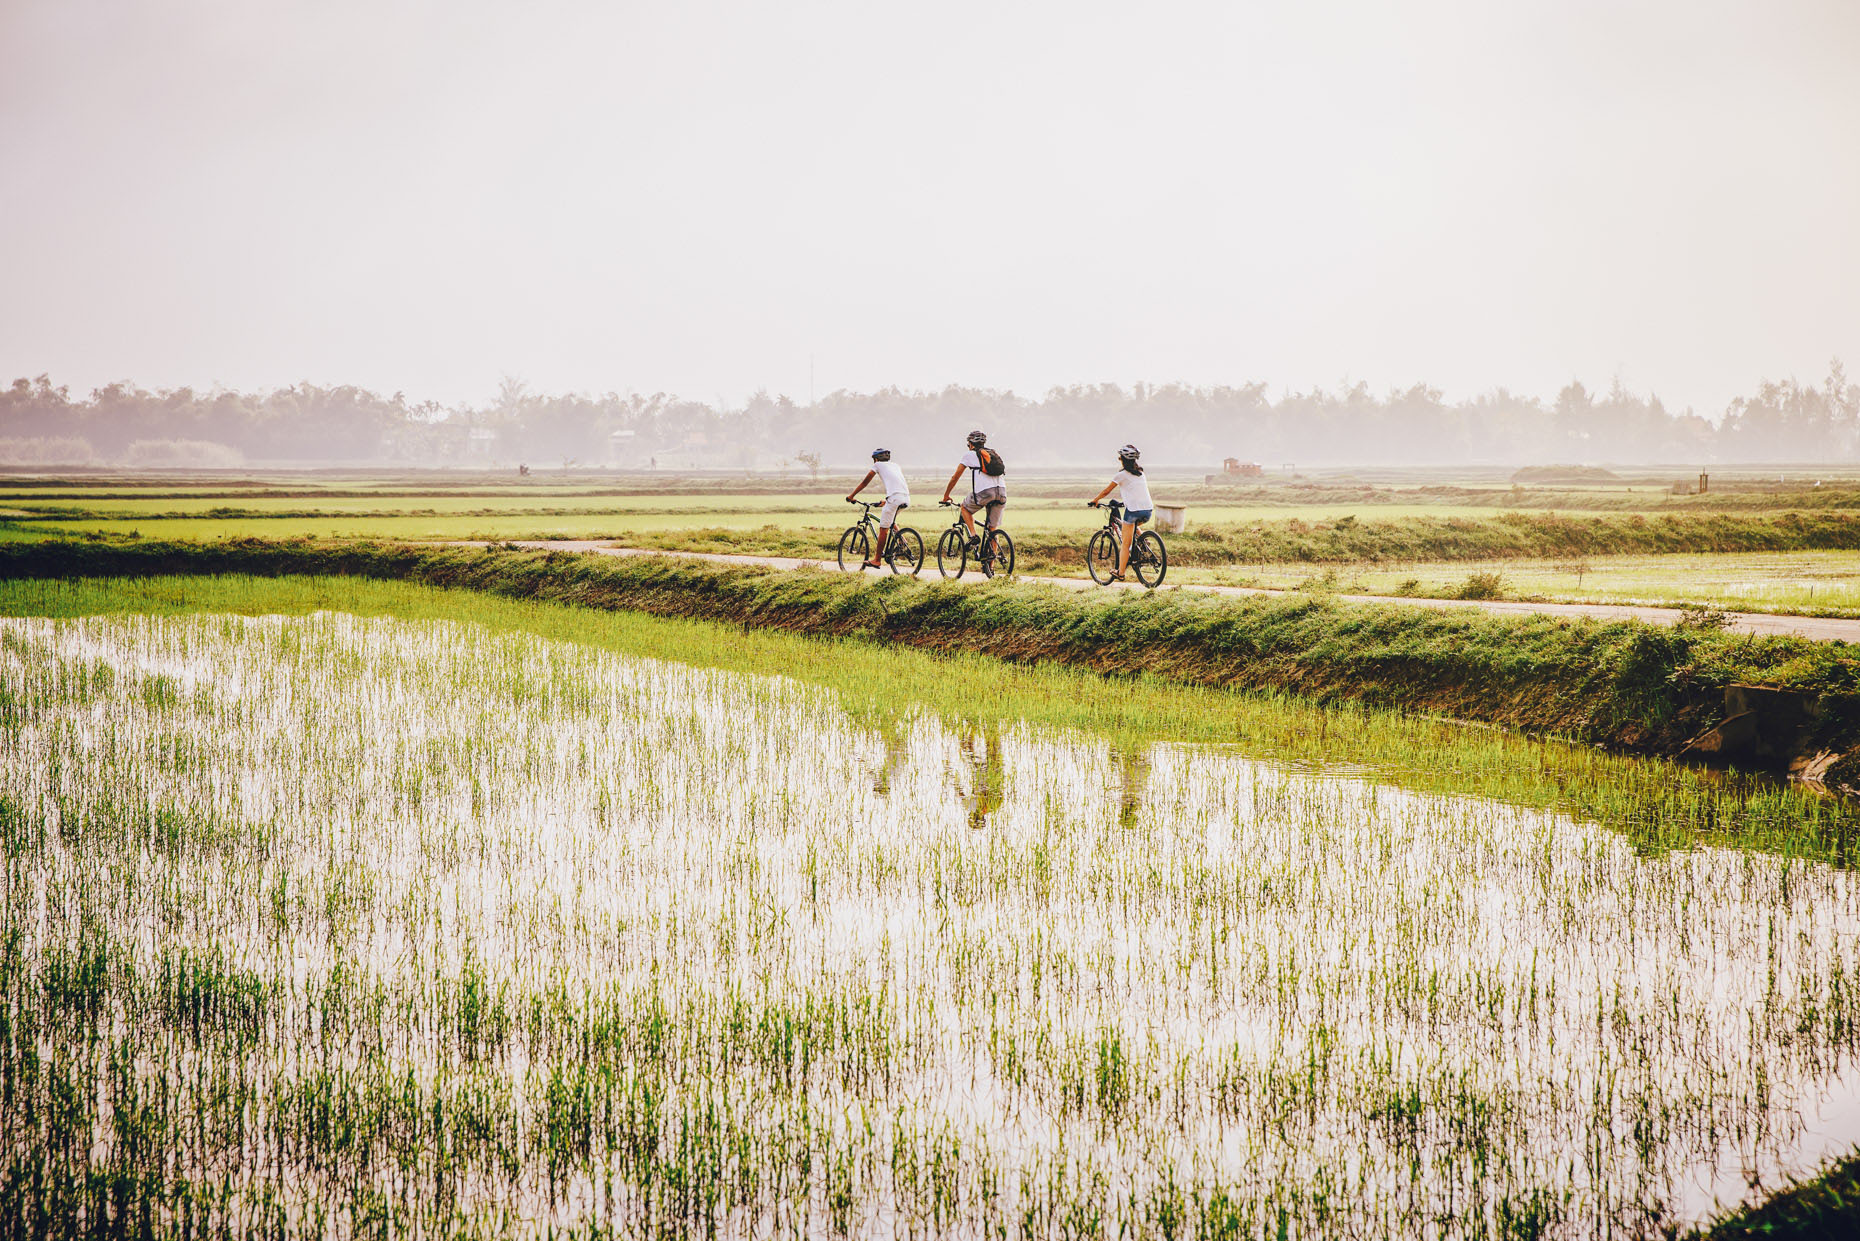 Three people cycling through rice fields in Vietnam